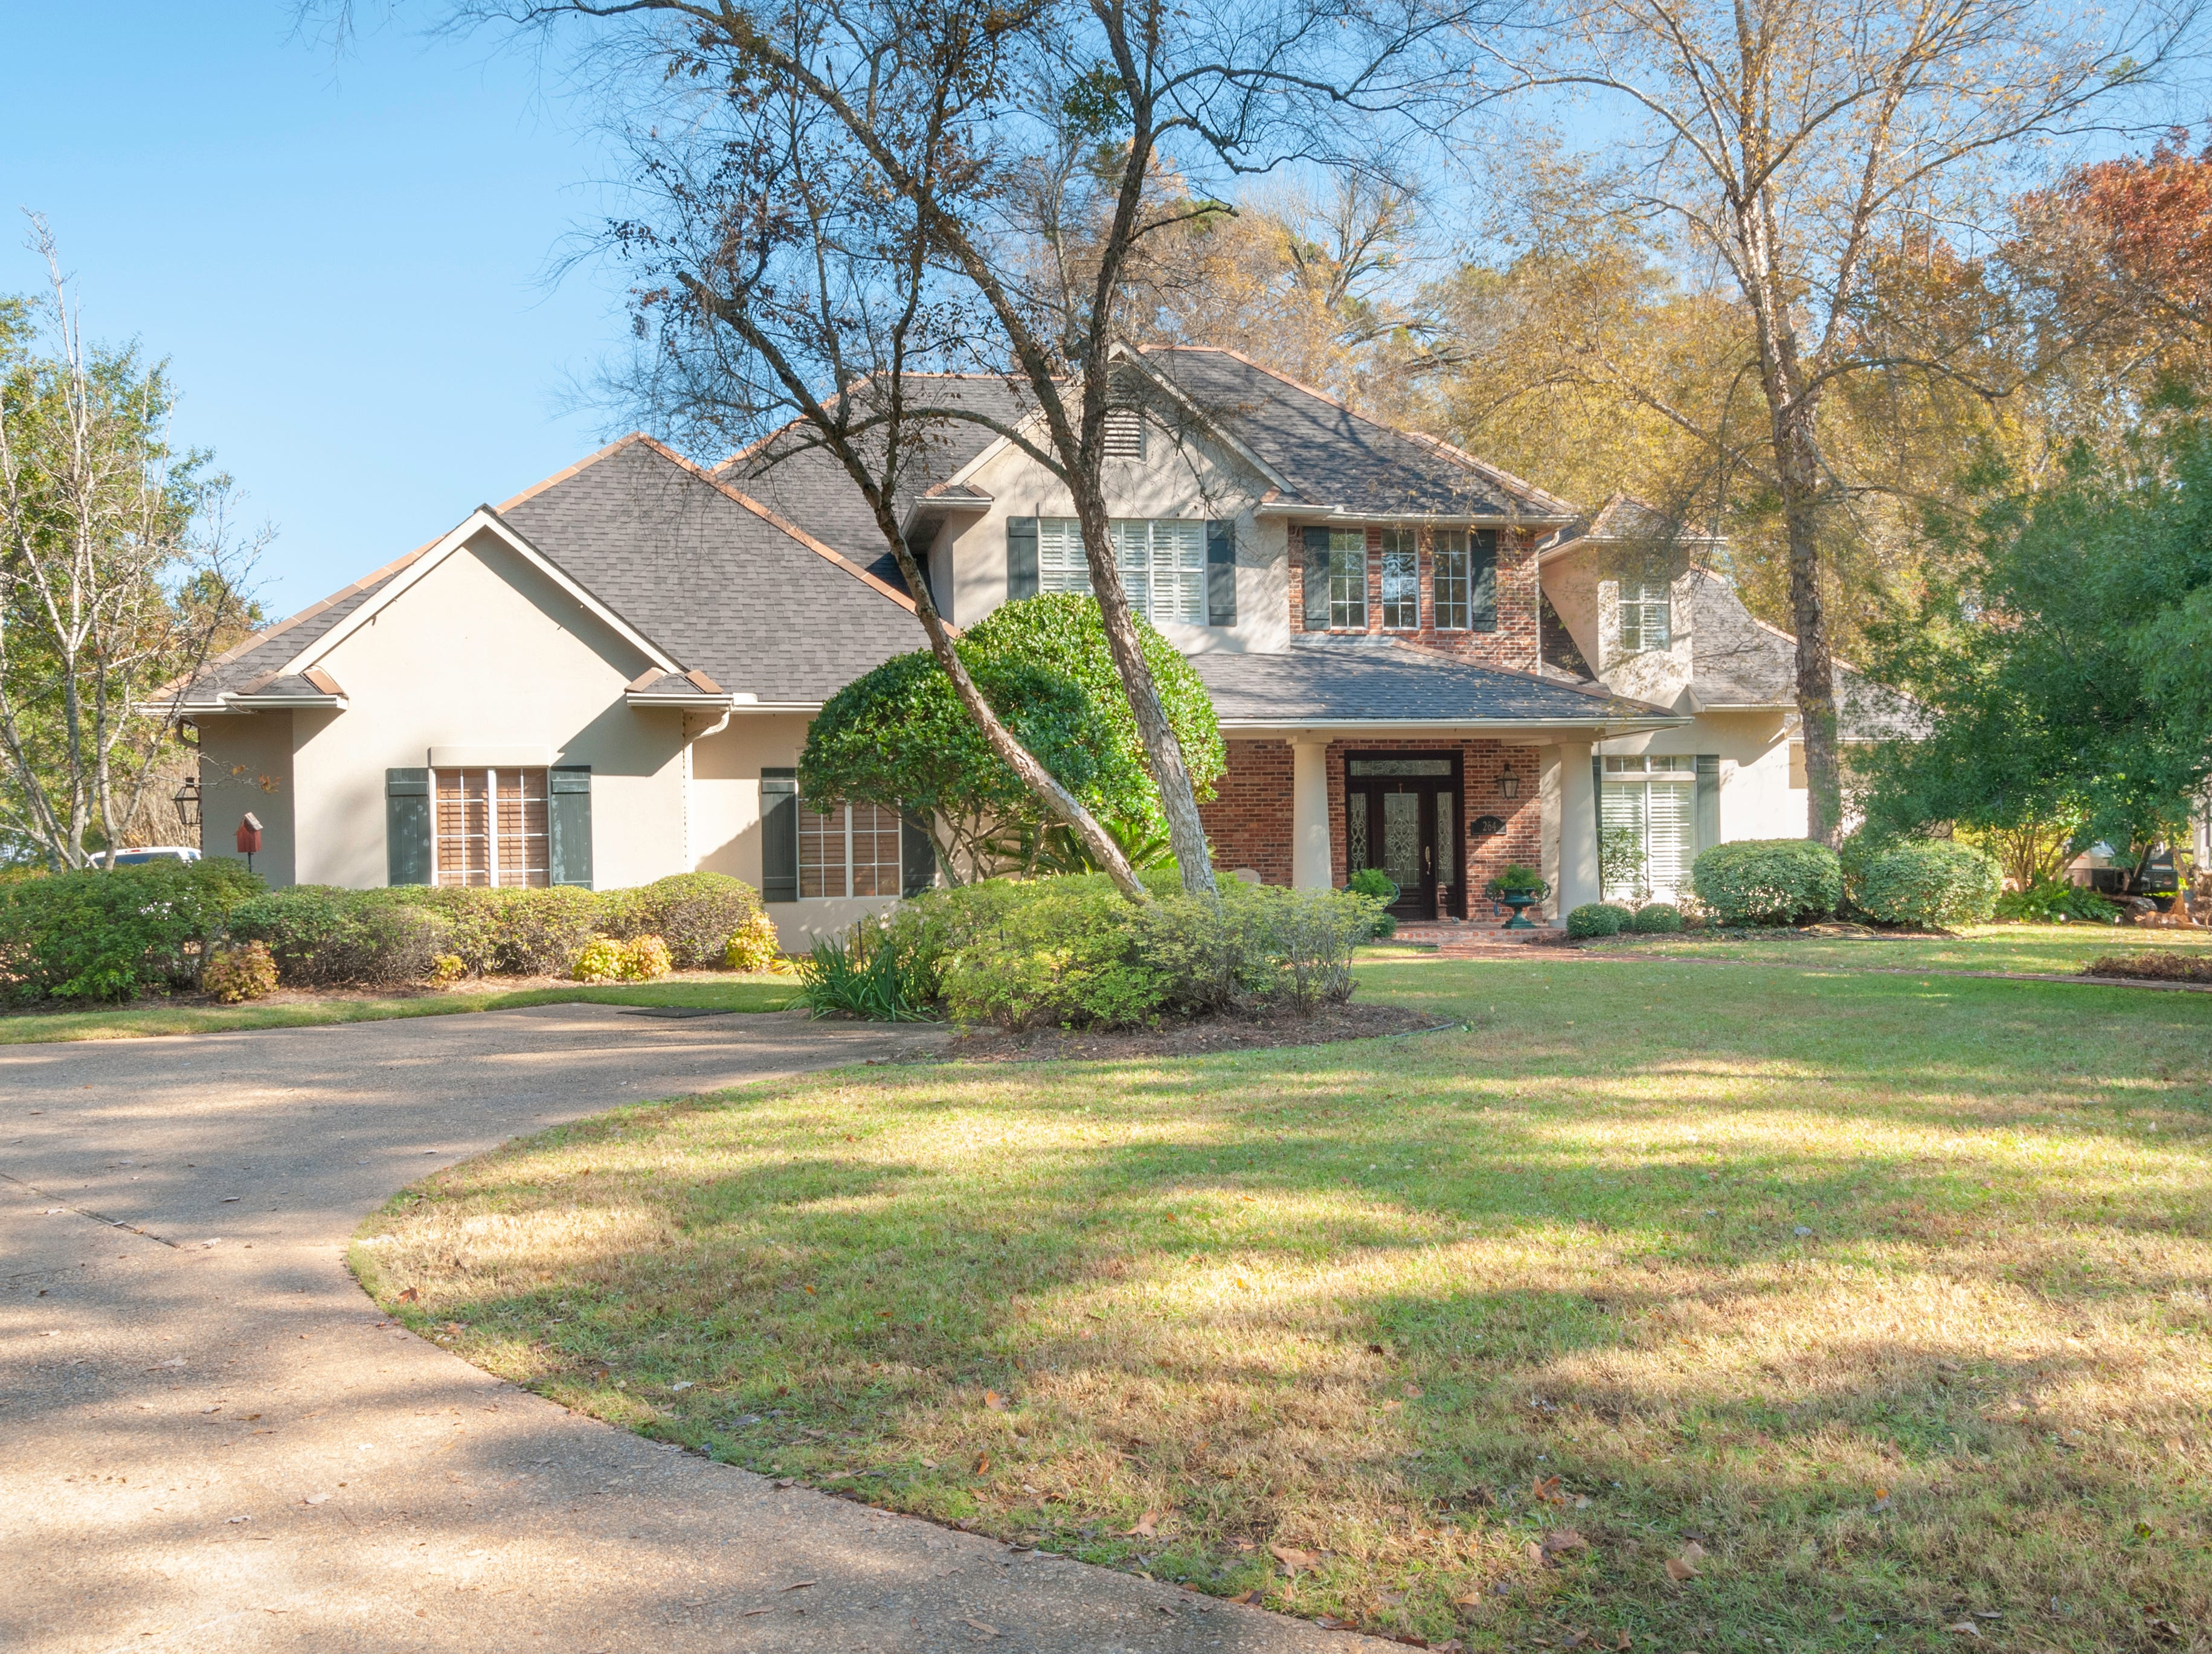 264 Golf Ridge Drive, Shreveport  Price: $950,000  Details: 4 bedrooms, 5 bathrooms, 5,024 square feet  Special features: Sprawling home with golf course views and pool and hot tub.   Contact: Carolyn Mill, 458-2945